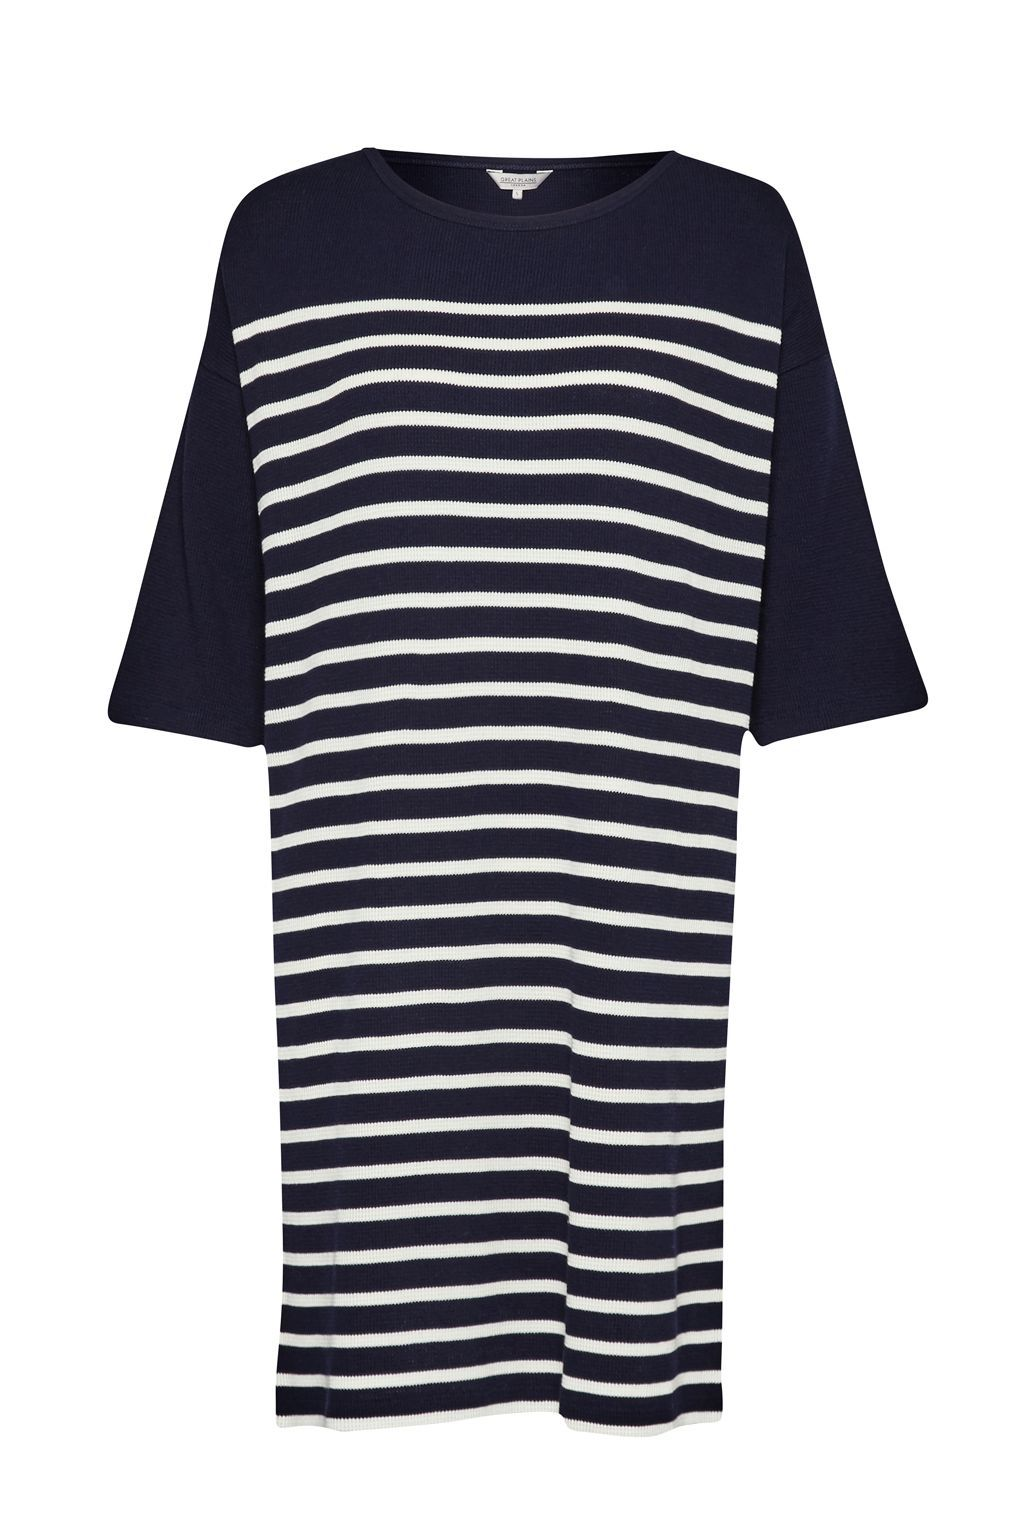 Waffle On Roll Sleeve Dress, Blue - style: t-shirt; fit: loose; pattern: horizontal stripes; secondary colour: white; predominant colour: navy; occasions: casual; length: just above the knee; fibres: cotton - mix; neckline: crew; sleeve length: half sleeve; sleeve style: standard; pattern type: fabric; texture group: jersey - stretchy/drapey; multicoloured: multicoloured; season: s/s 2016; trends: graphic stripes; wardrobe: basic